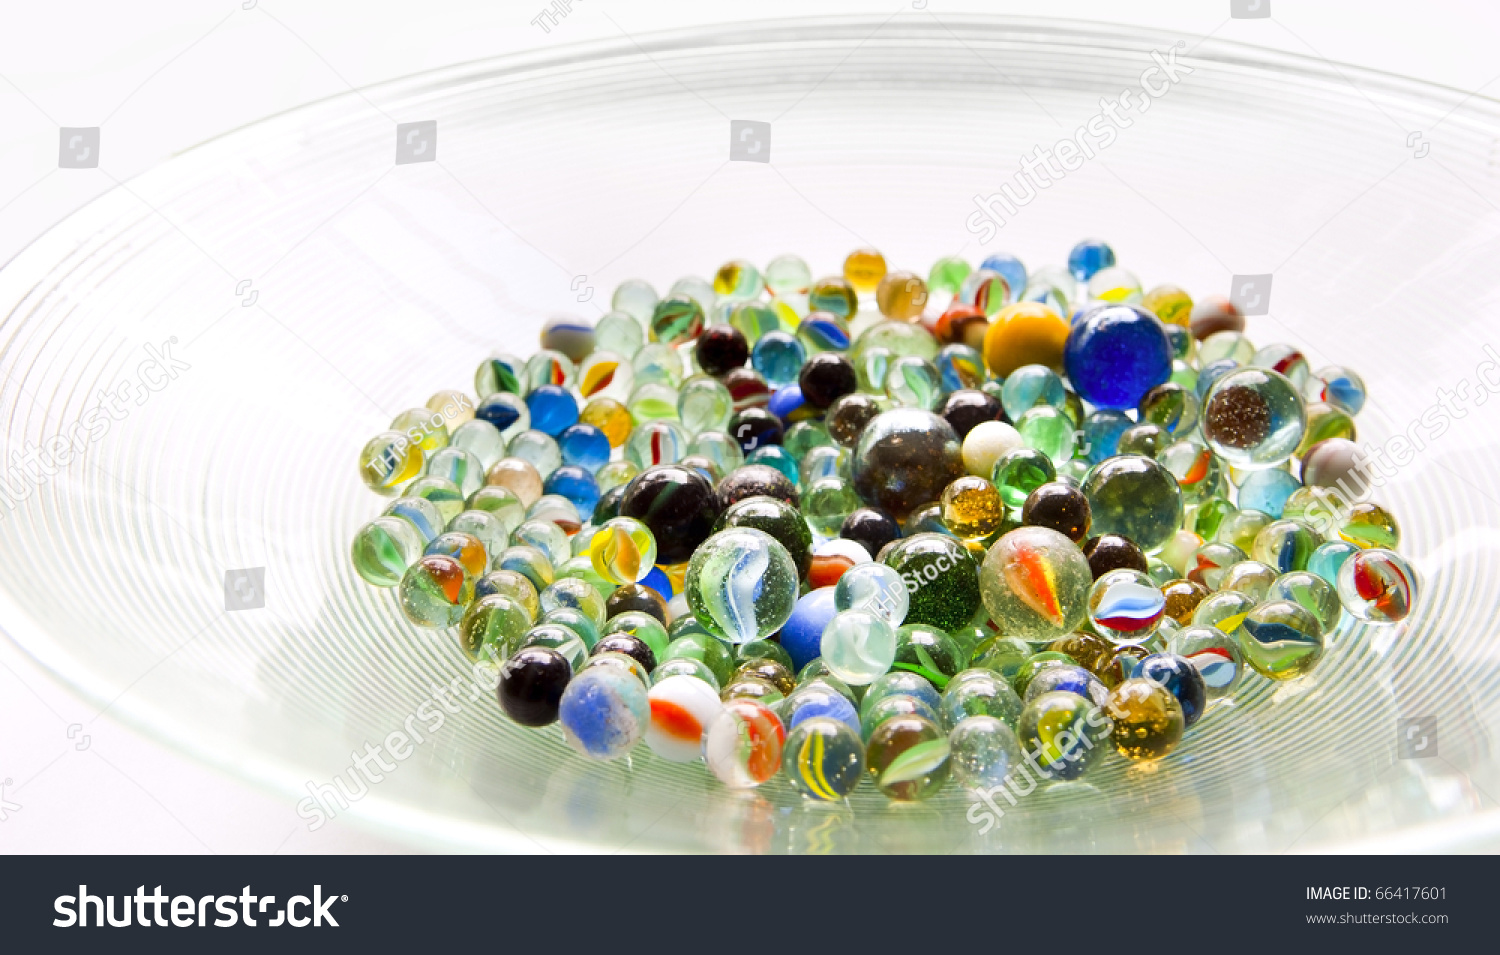 Bright Colored Marbles : Royalty free brightly colored marbles in different